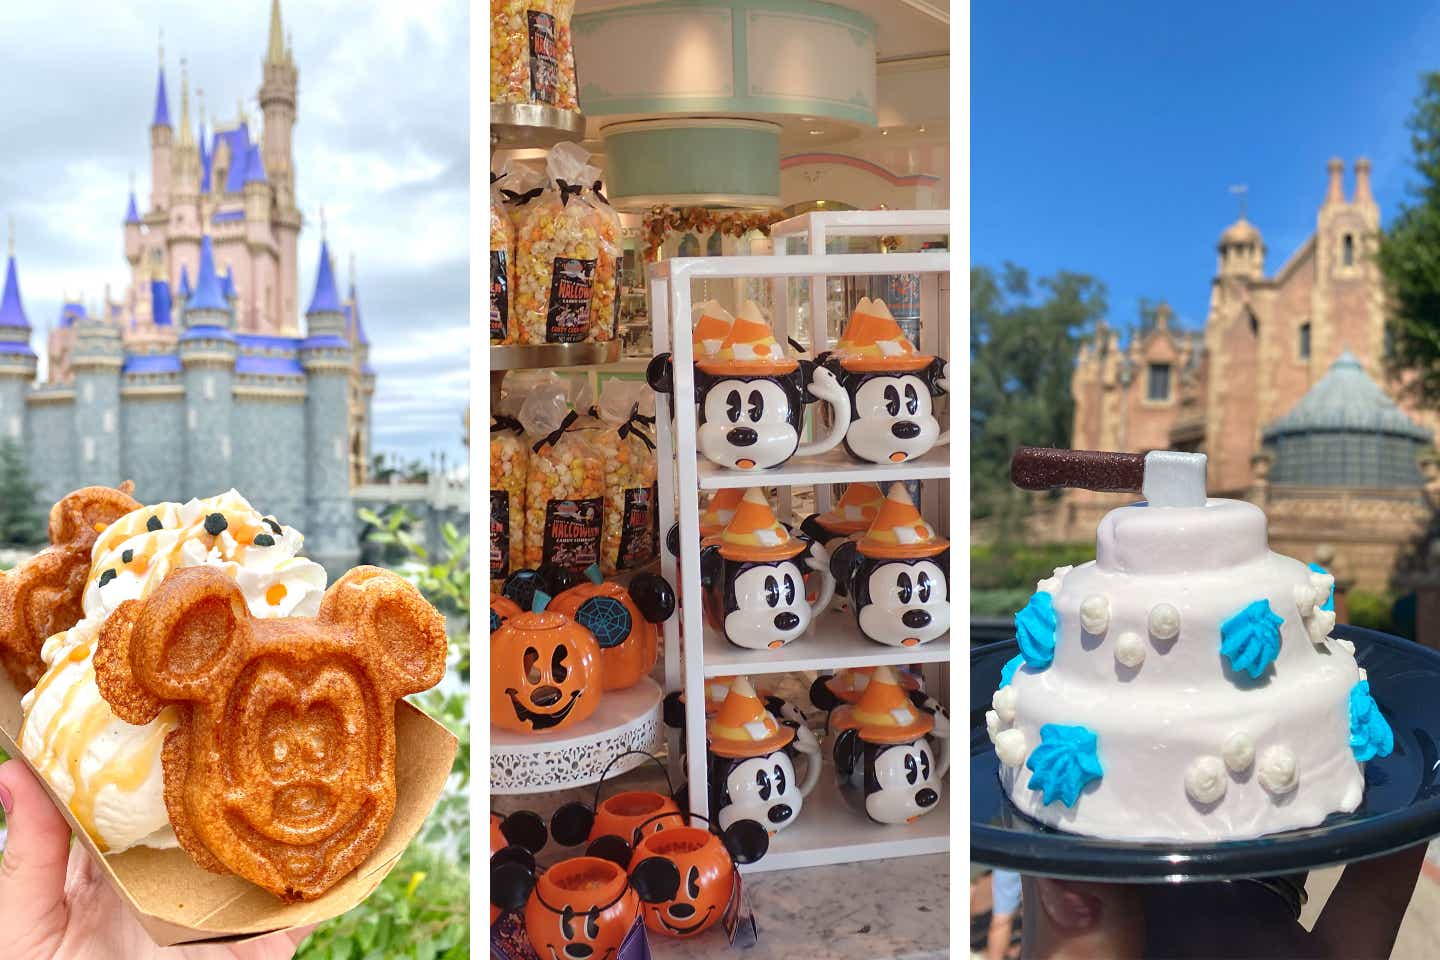 Various festive treats, tricks and gifts in the Magic Kingdom for the Fall season at Walt Disney World.